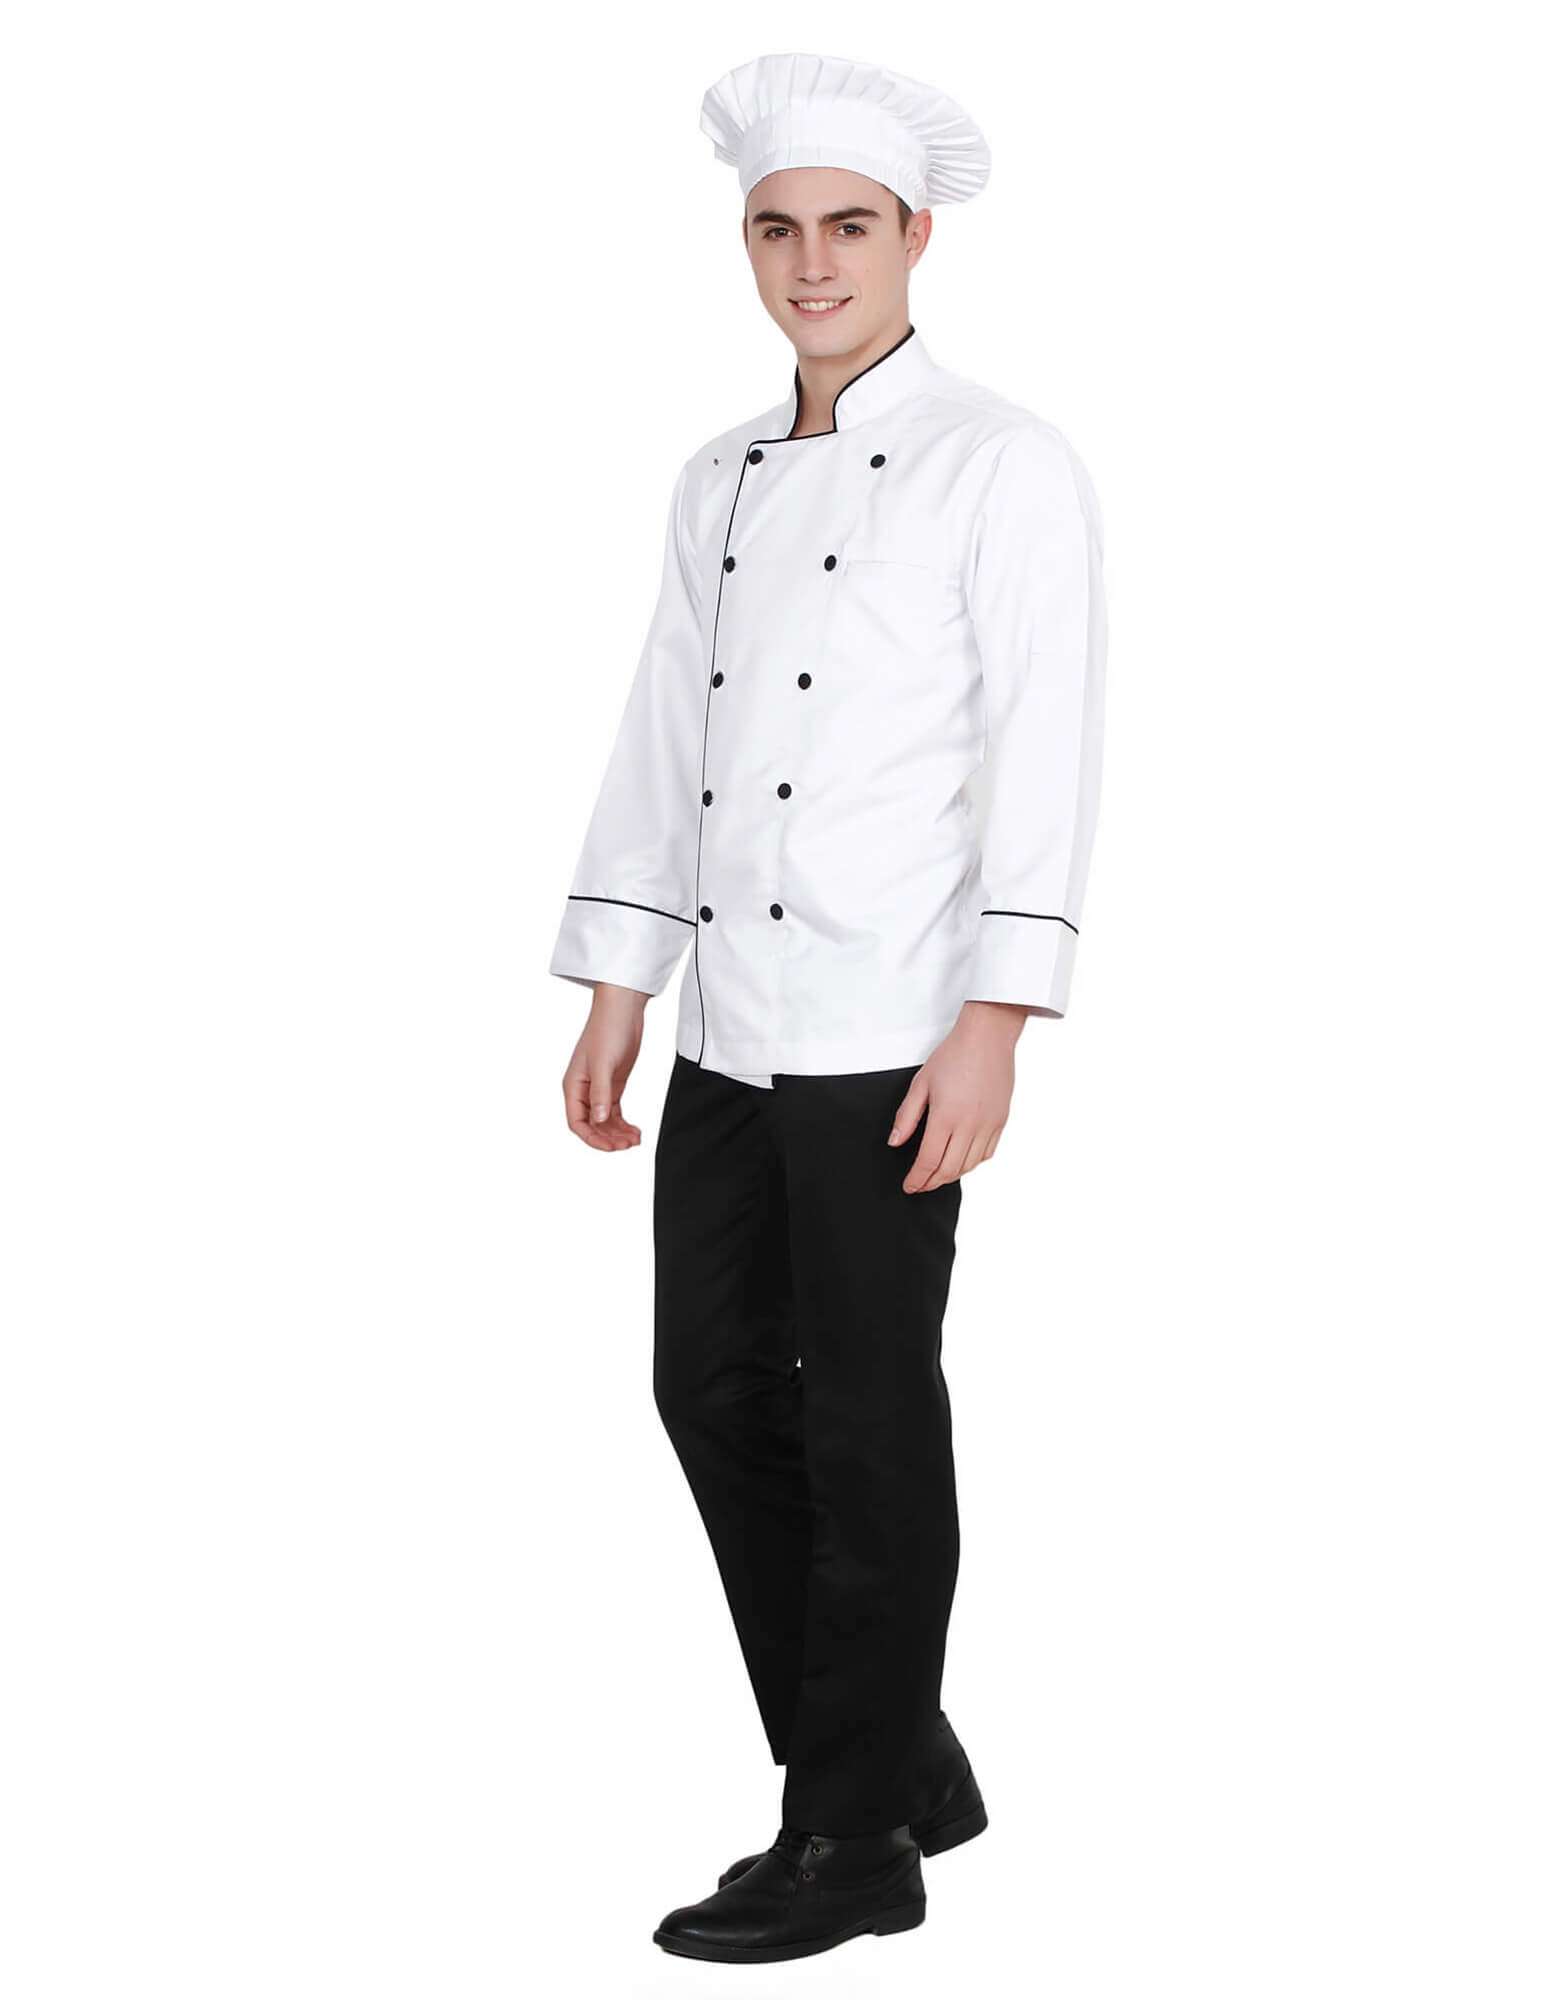 Buy White Chef Coat With Black Piping For Men Online